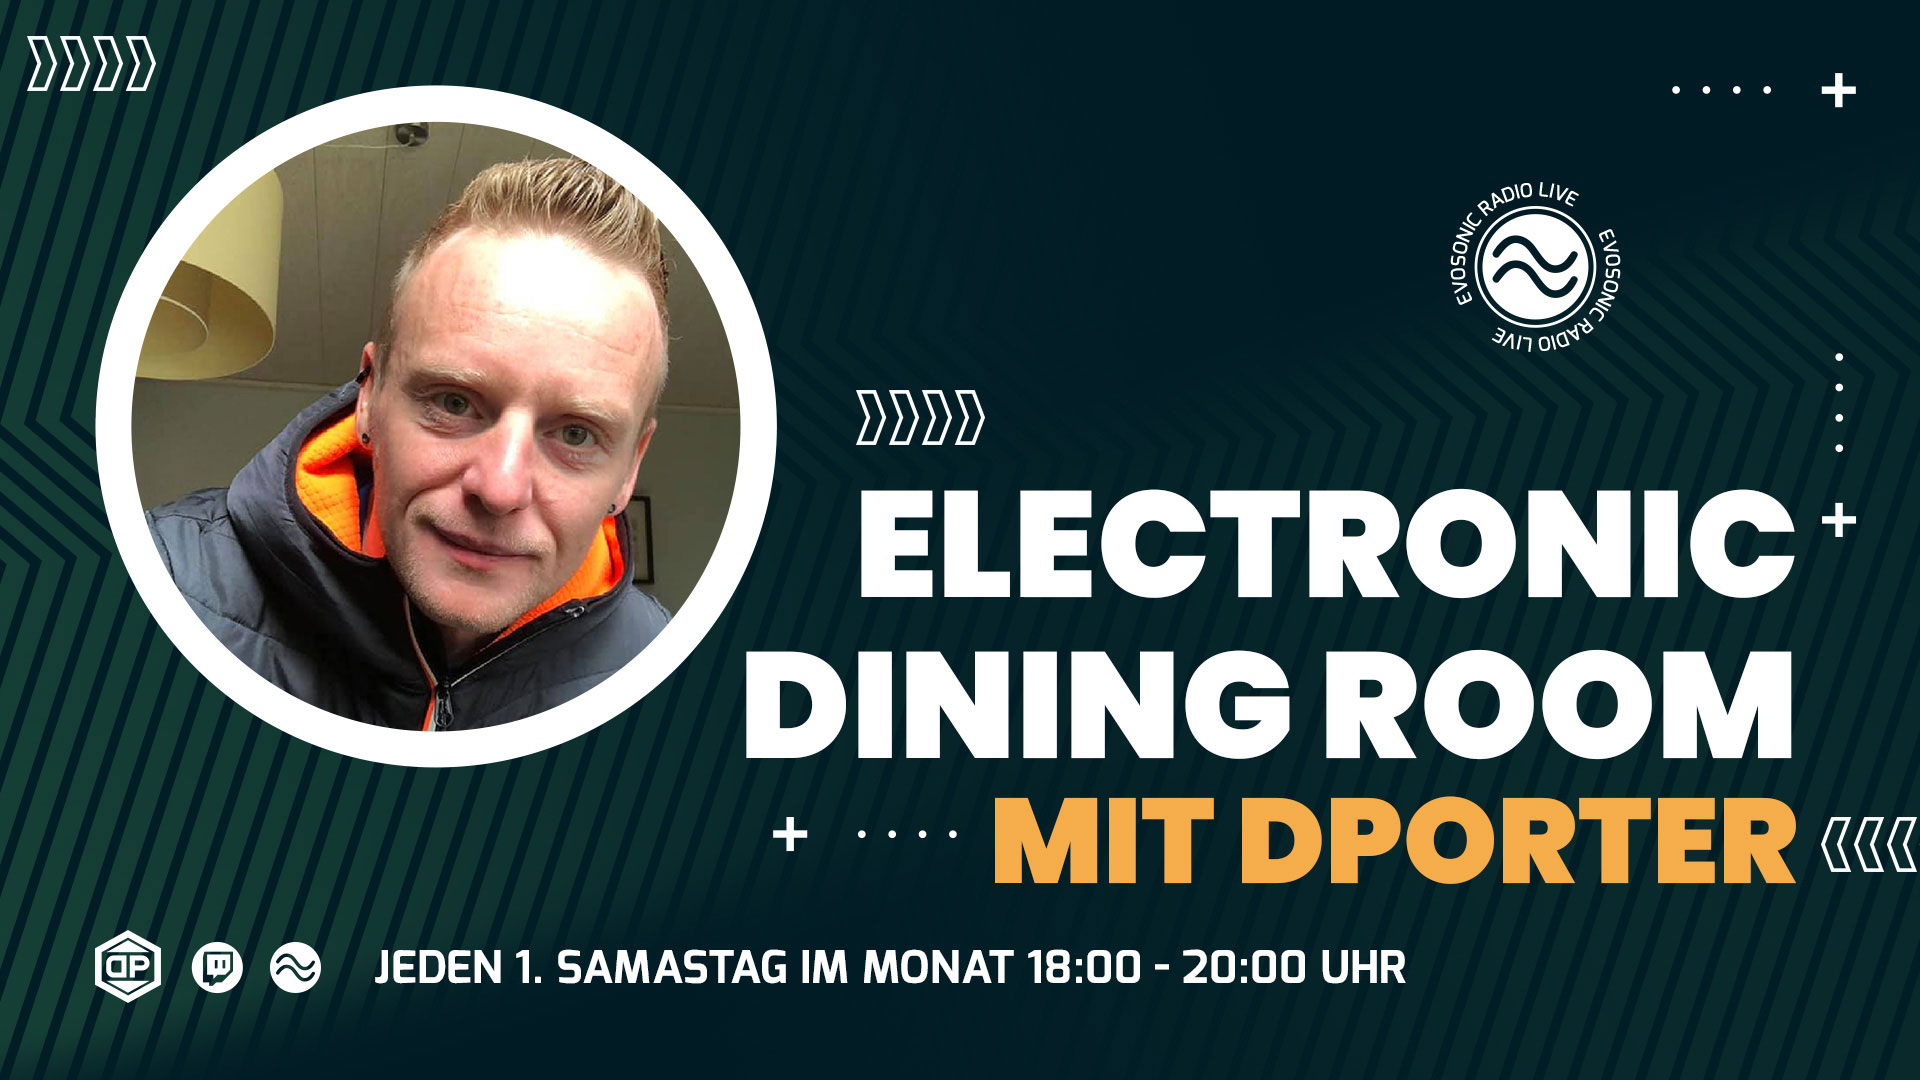 ELECTRONIC DINING ROOM